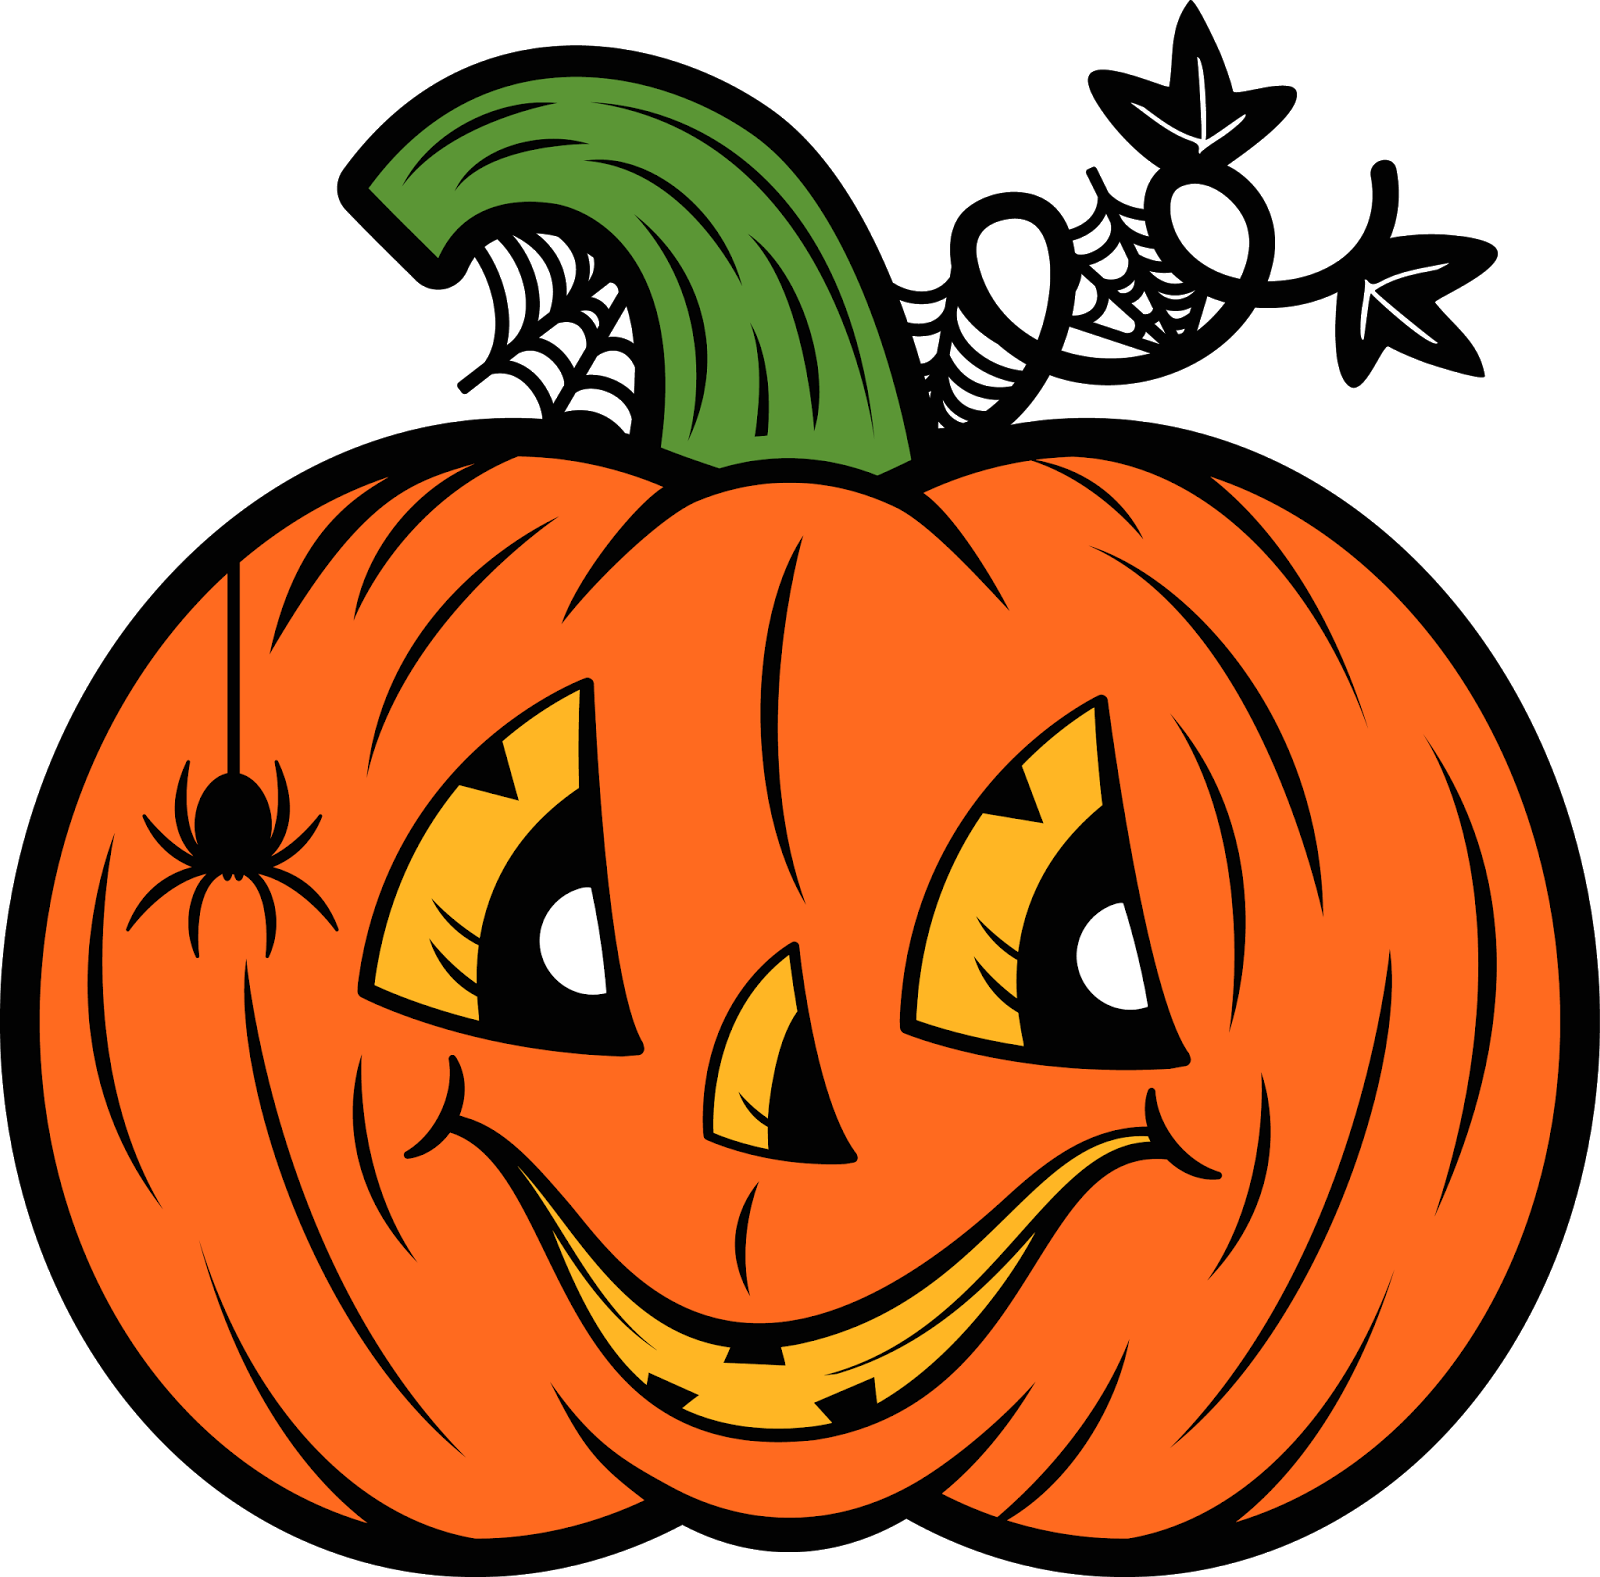 Roller skating pumpkin clipart jpg library download Miss Kate Cuttables: Halloween JACK-O-LANTERN Shaped Card jpg library download